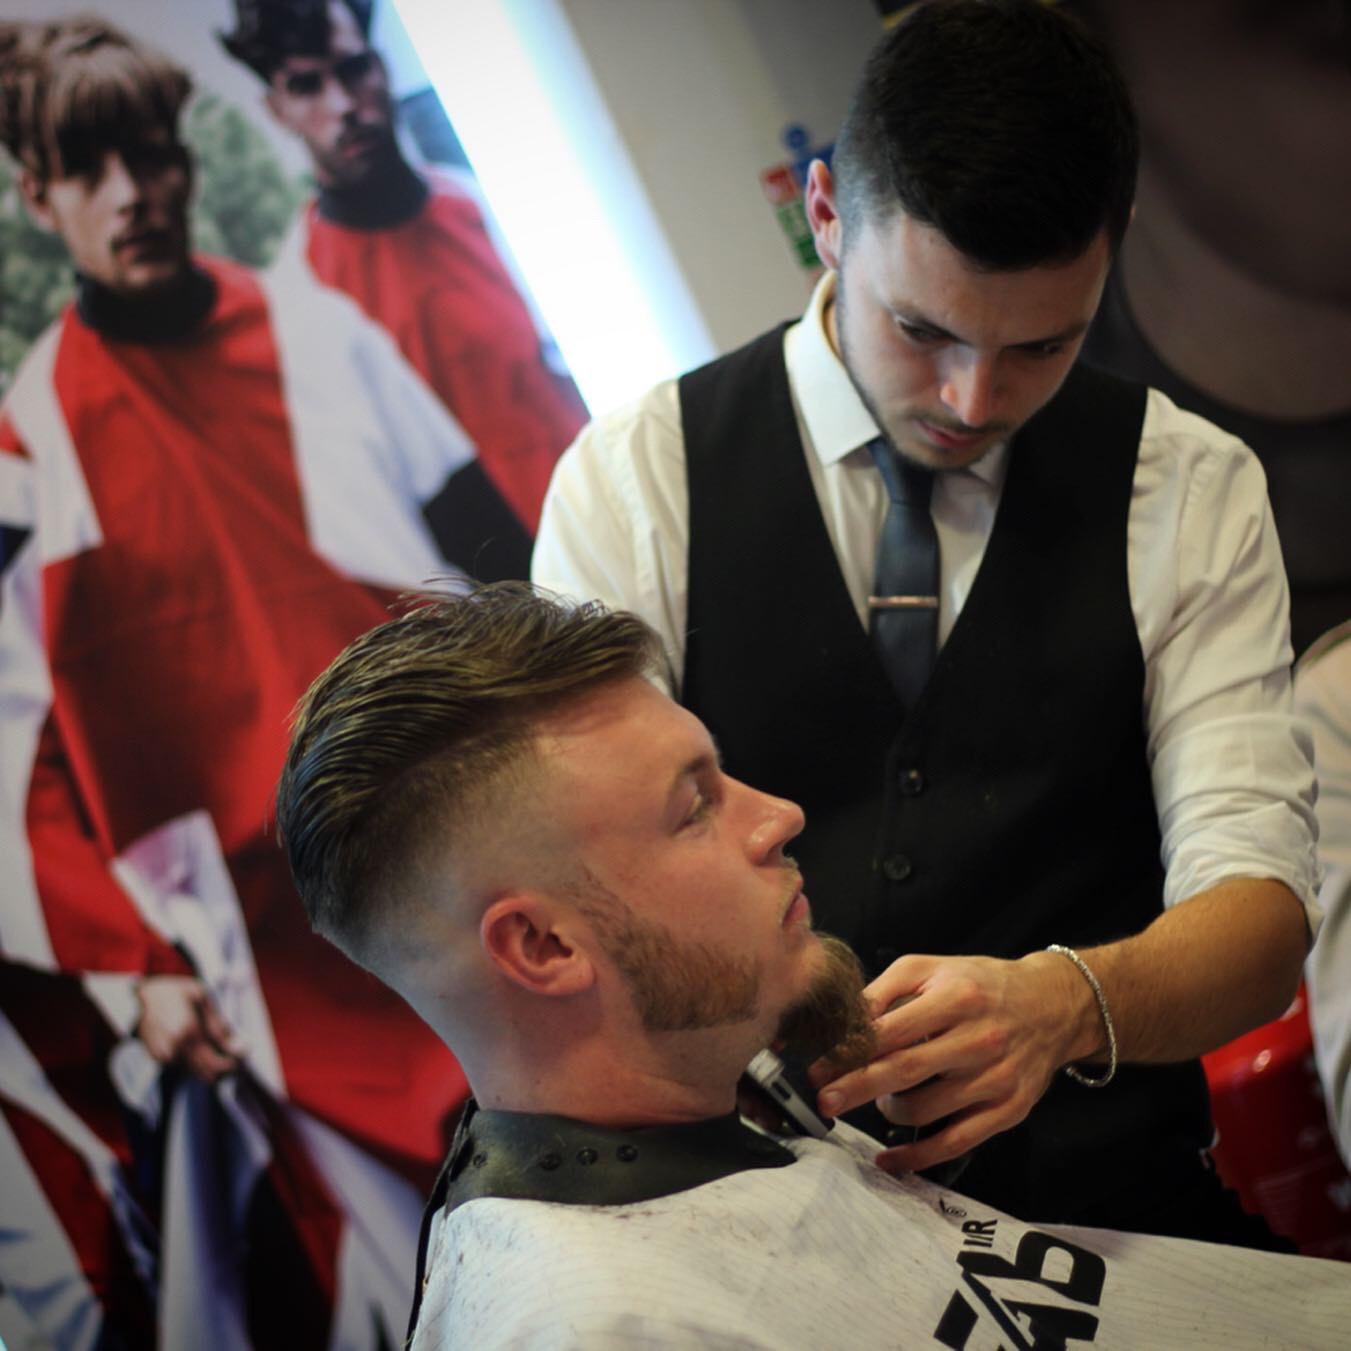 finest barbers adam isbill barbering